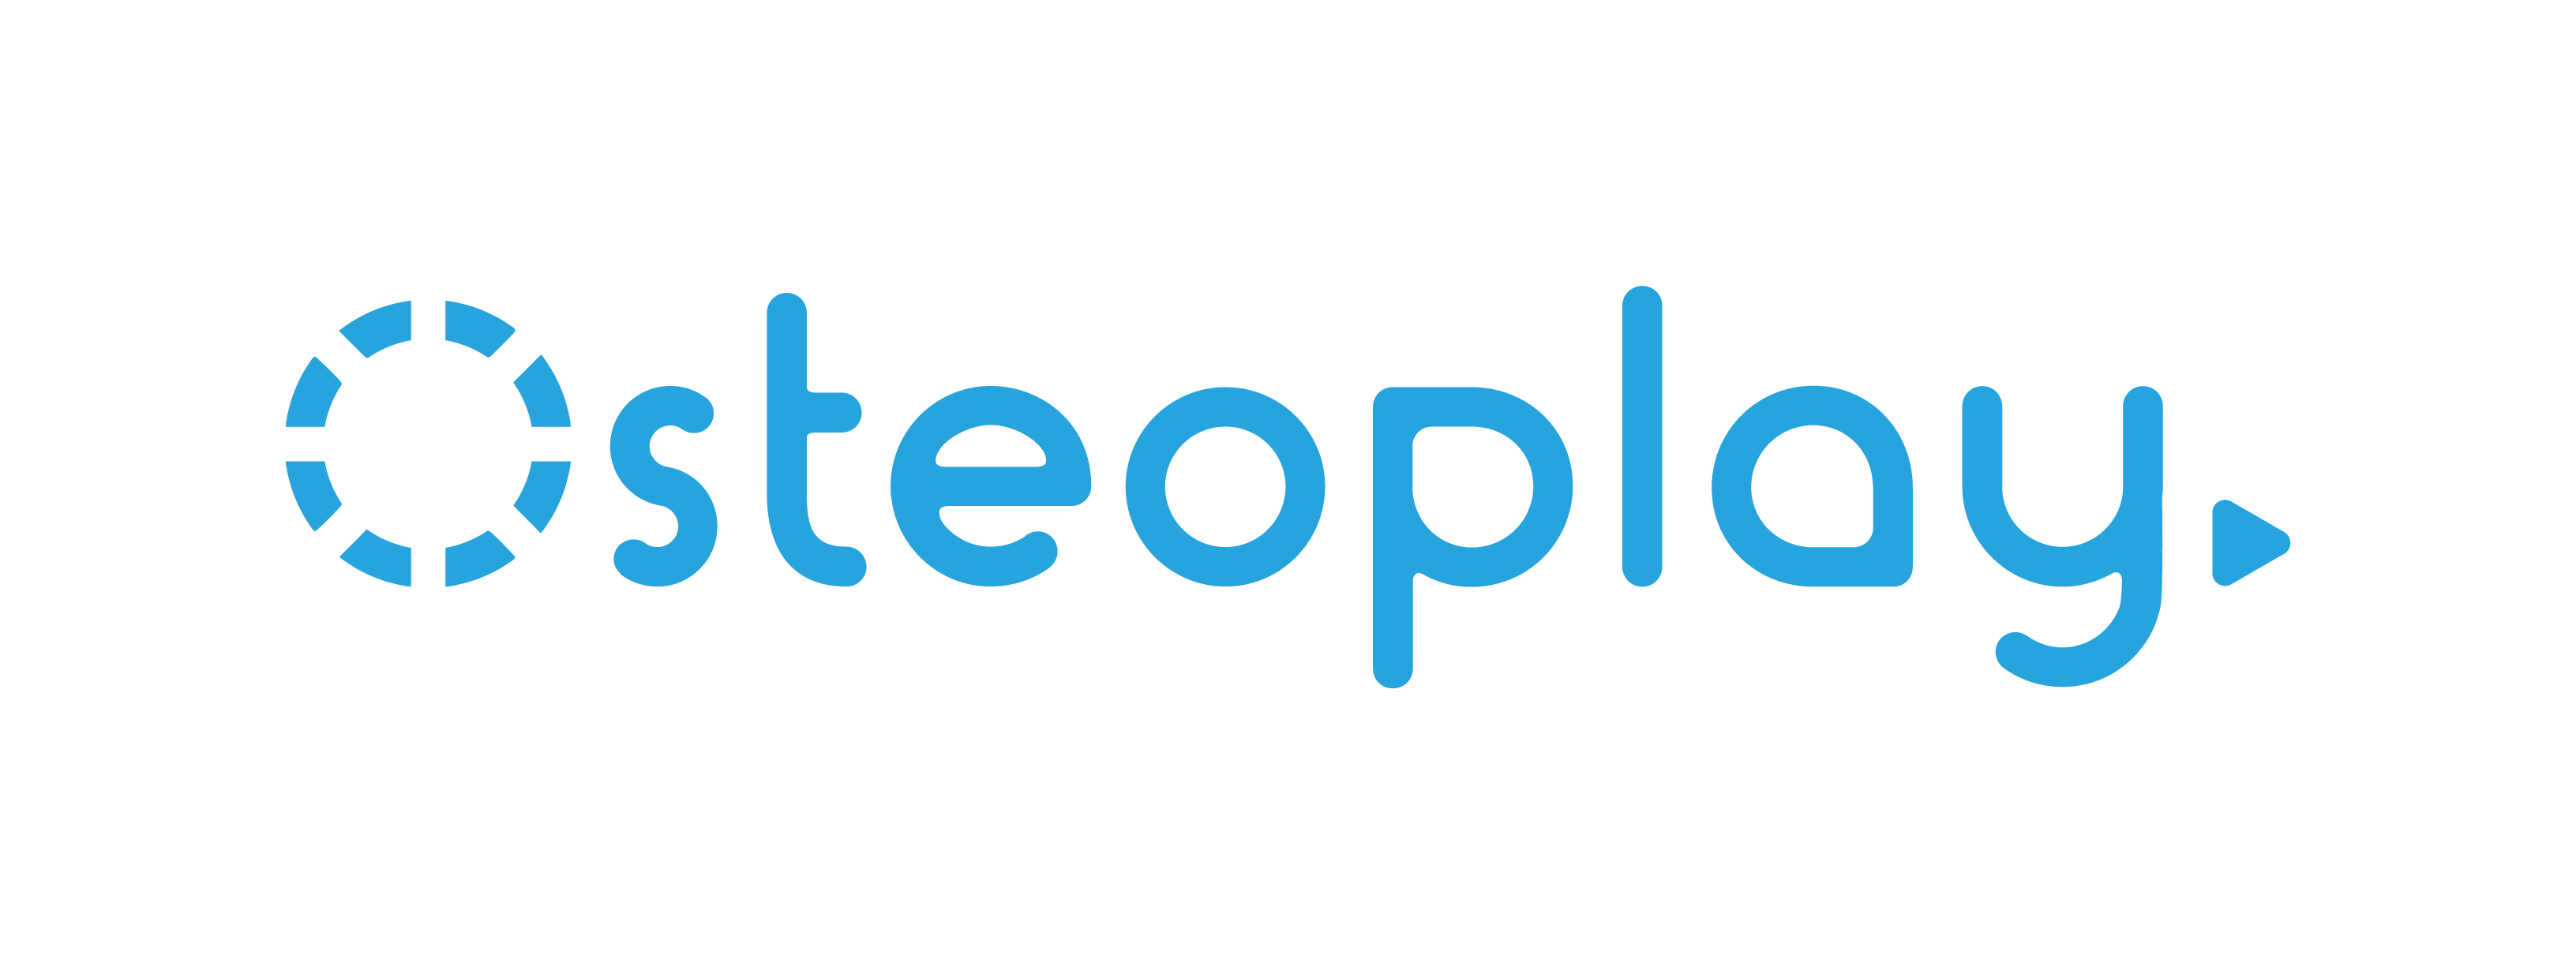 Osteoplay